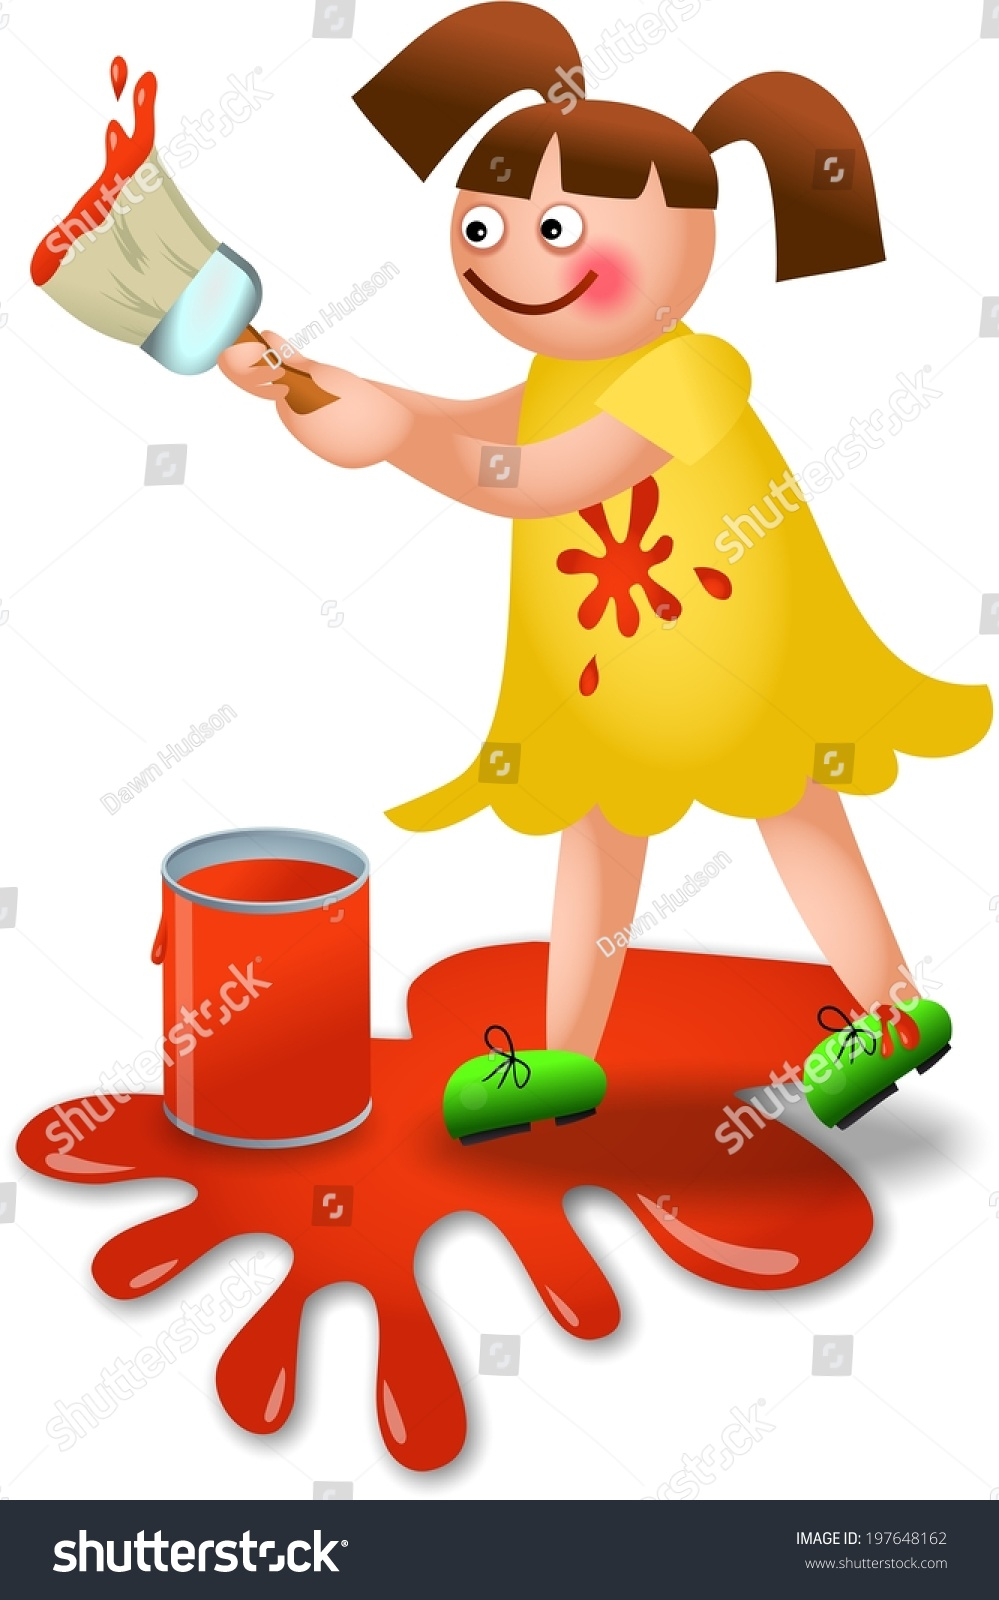 Royalty Free Stock Illustration of Clipart Illustration Little.